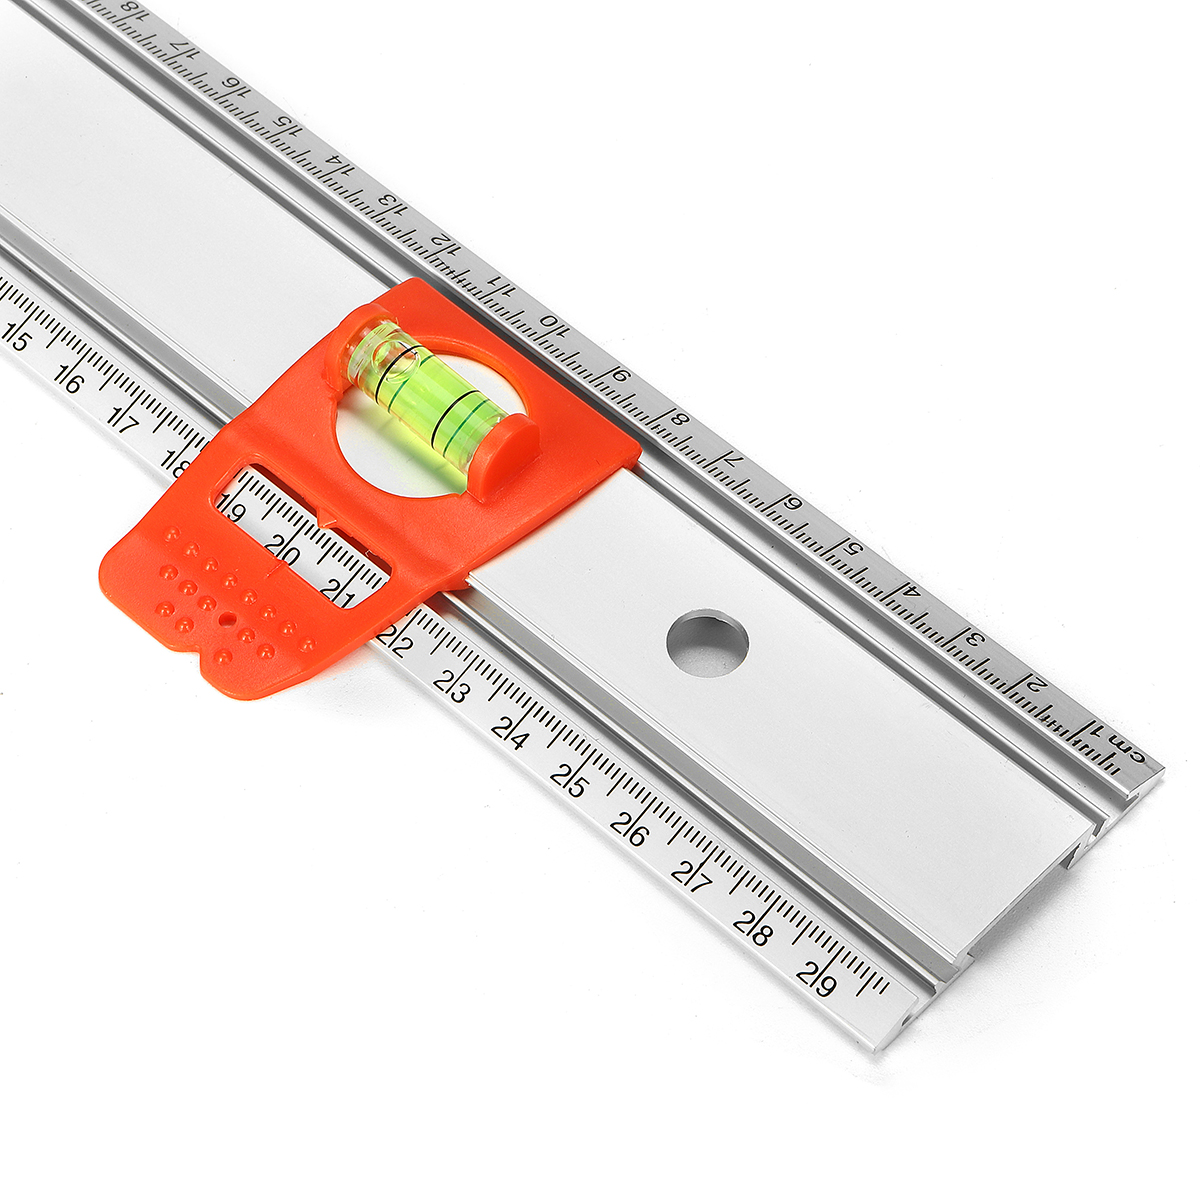 300mm Aluminum Alloy Laser Level Magnet Ruler Measuring Tool